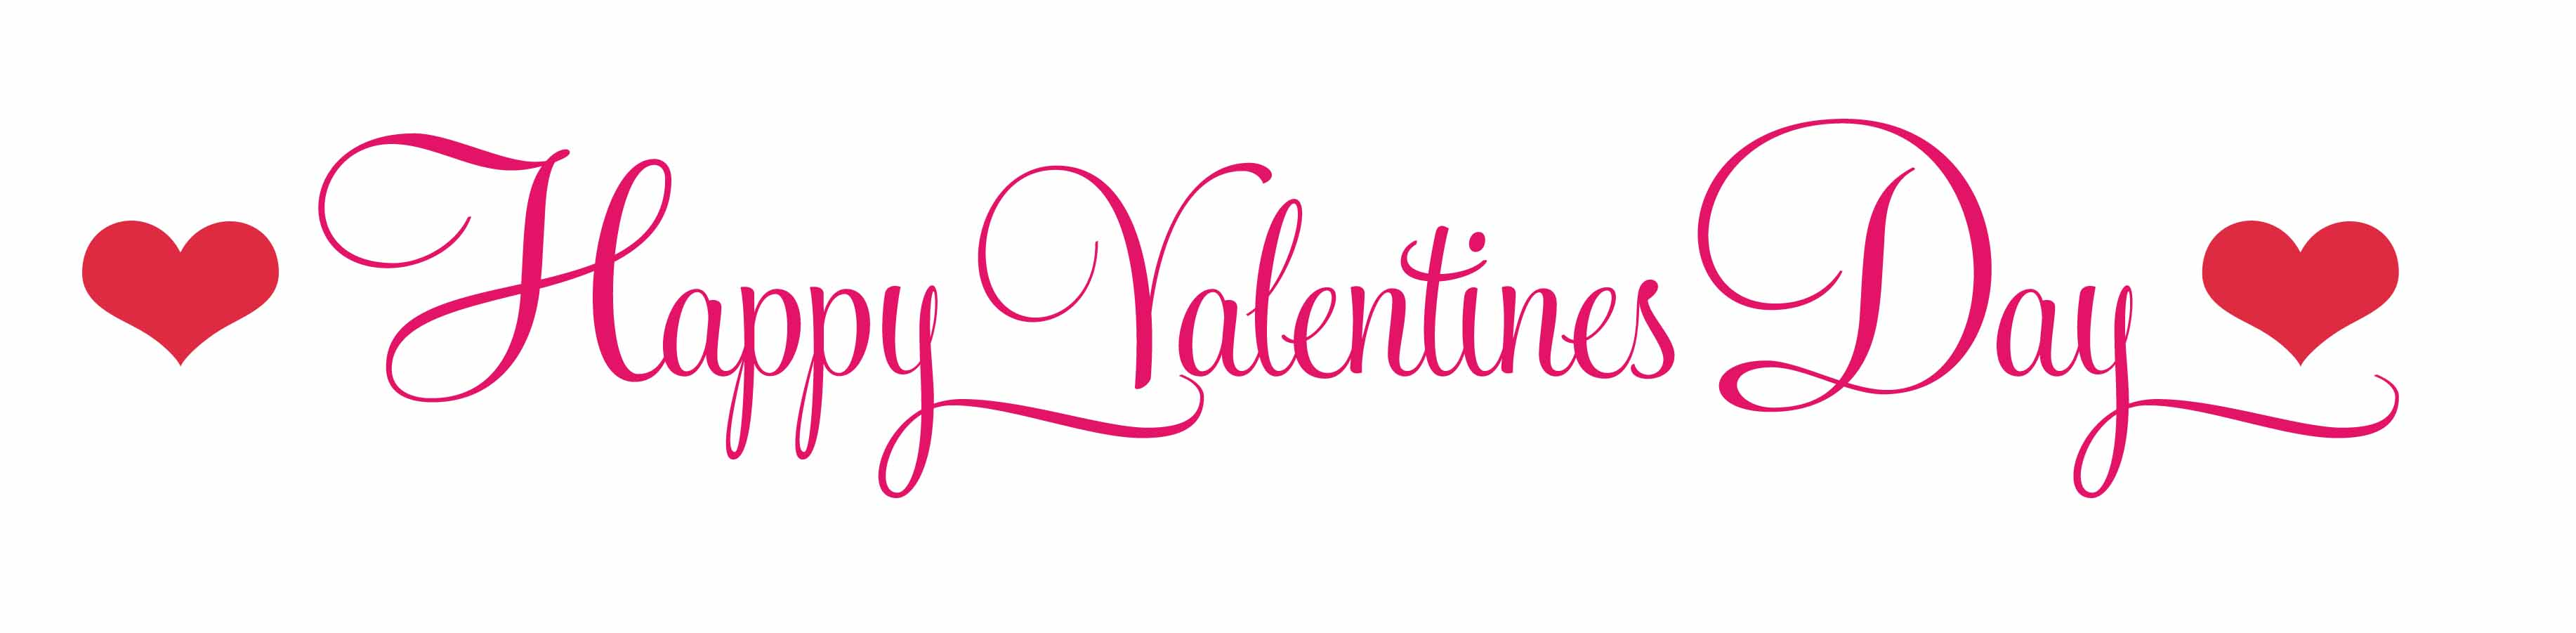 Valentines Day Clipart-hdclipartall.com-Clip Art3668